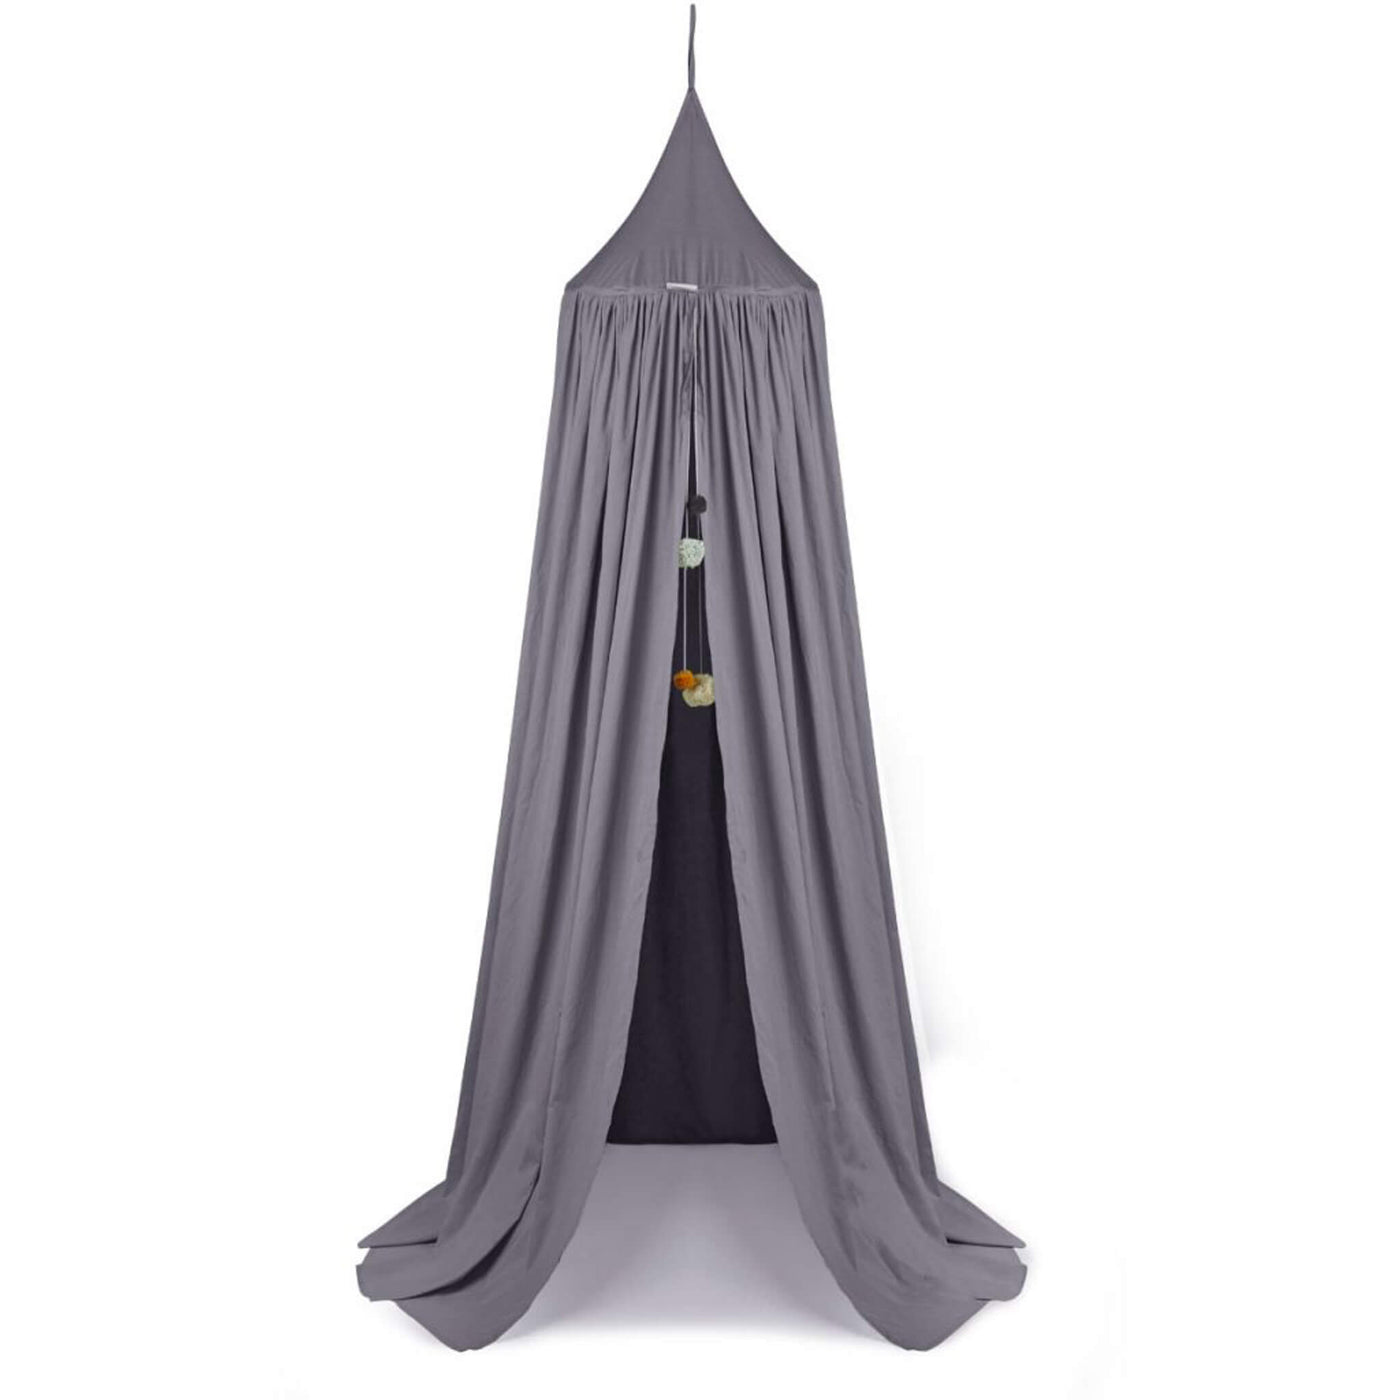 Enzo Bed Canopy - Stone Grey